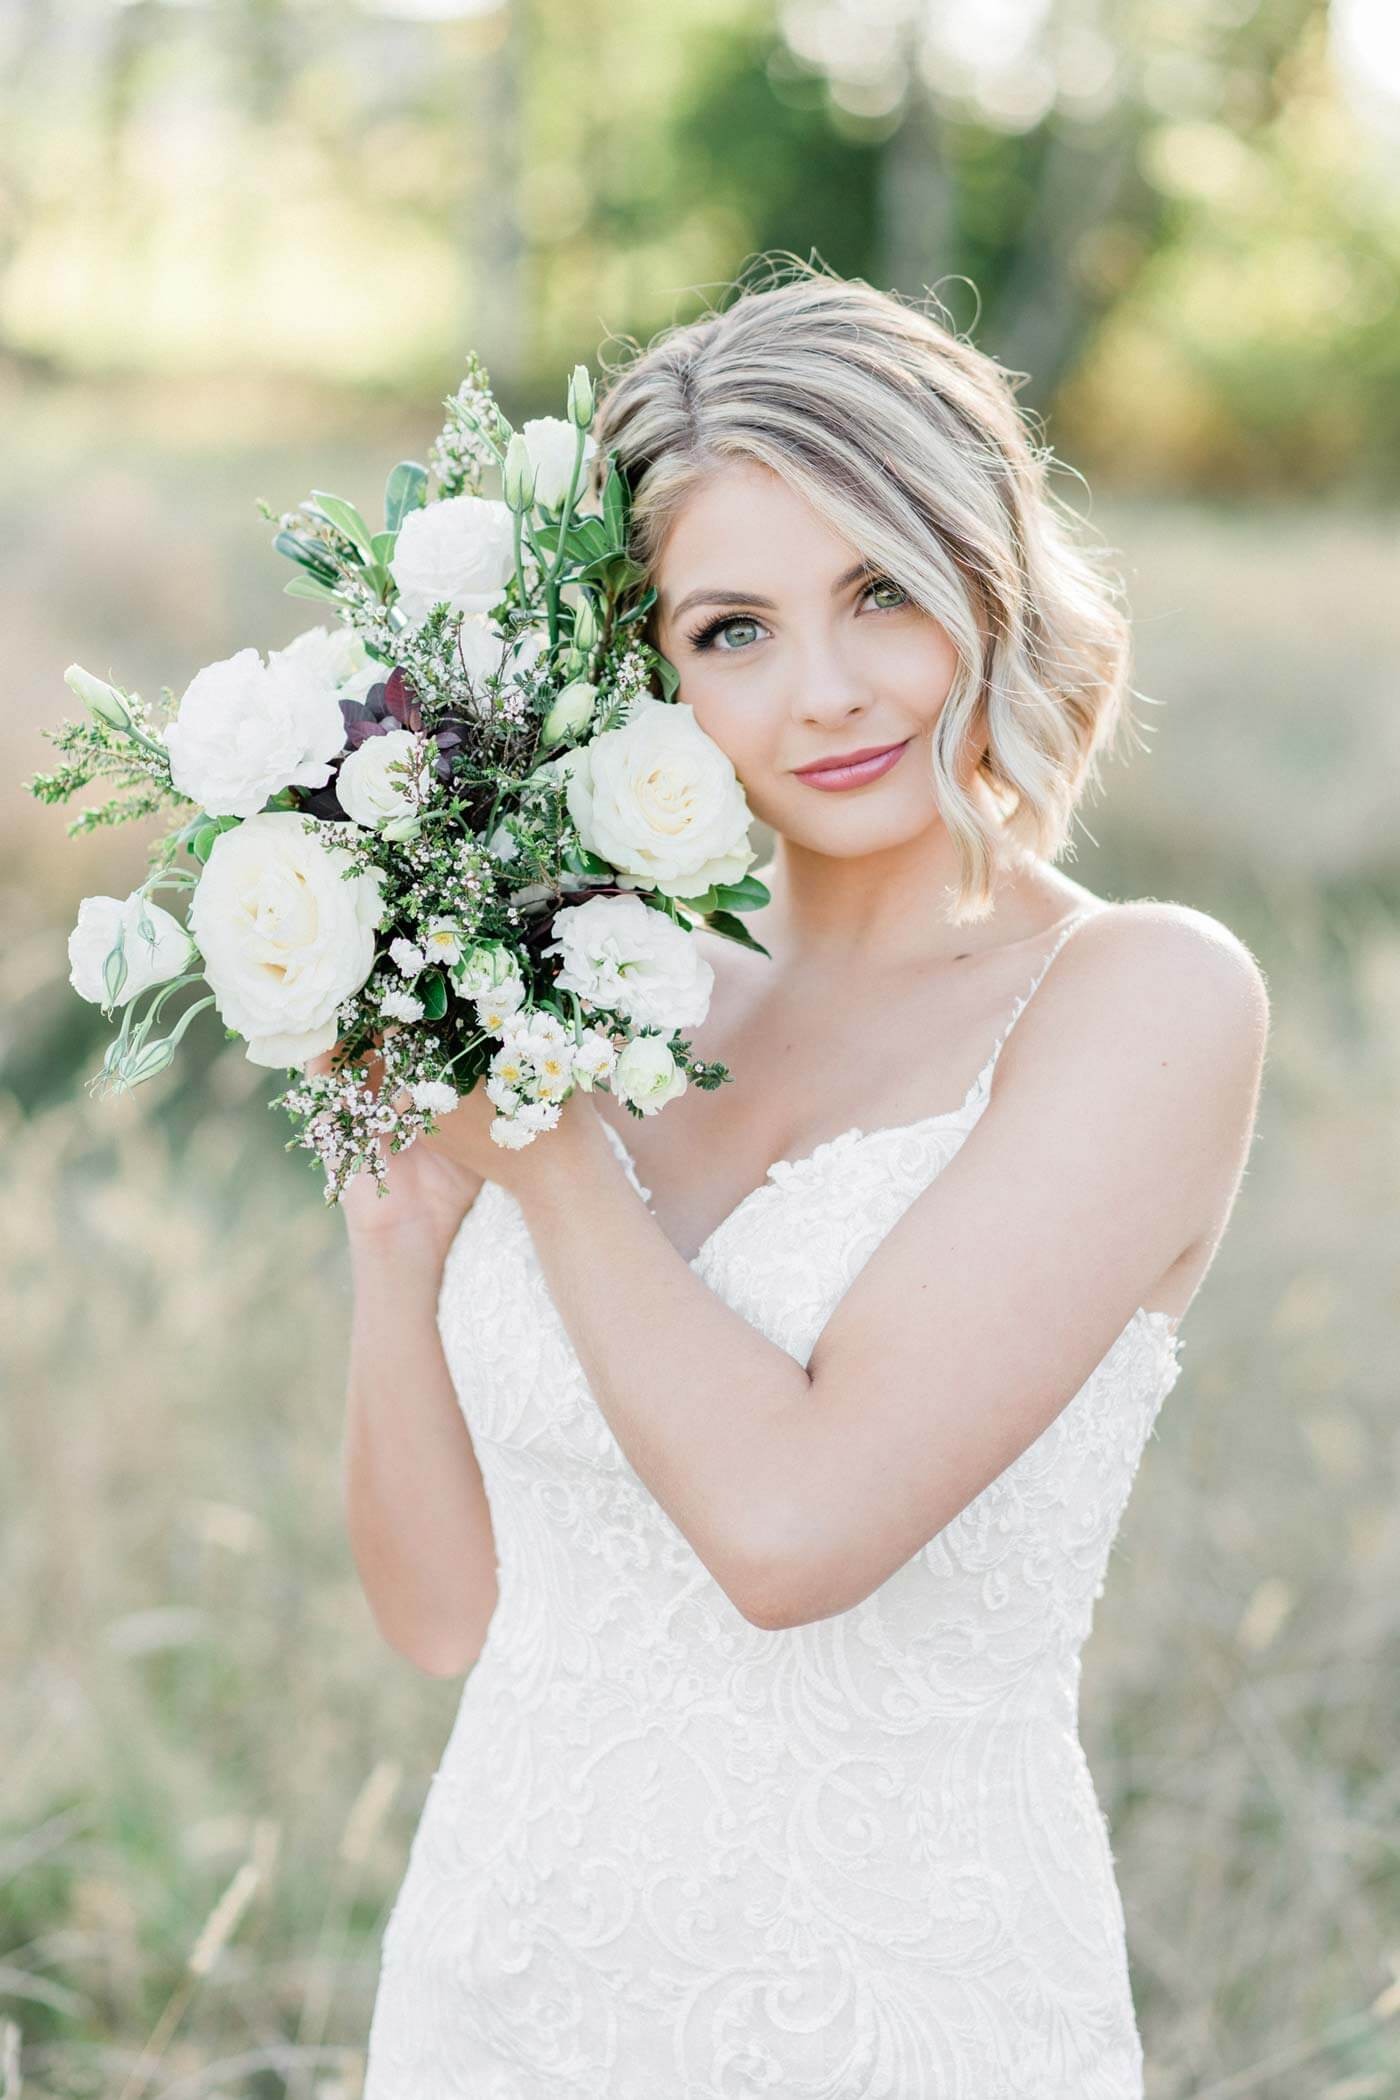 Romantic blush wedding bride in field with bridal bouquet